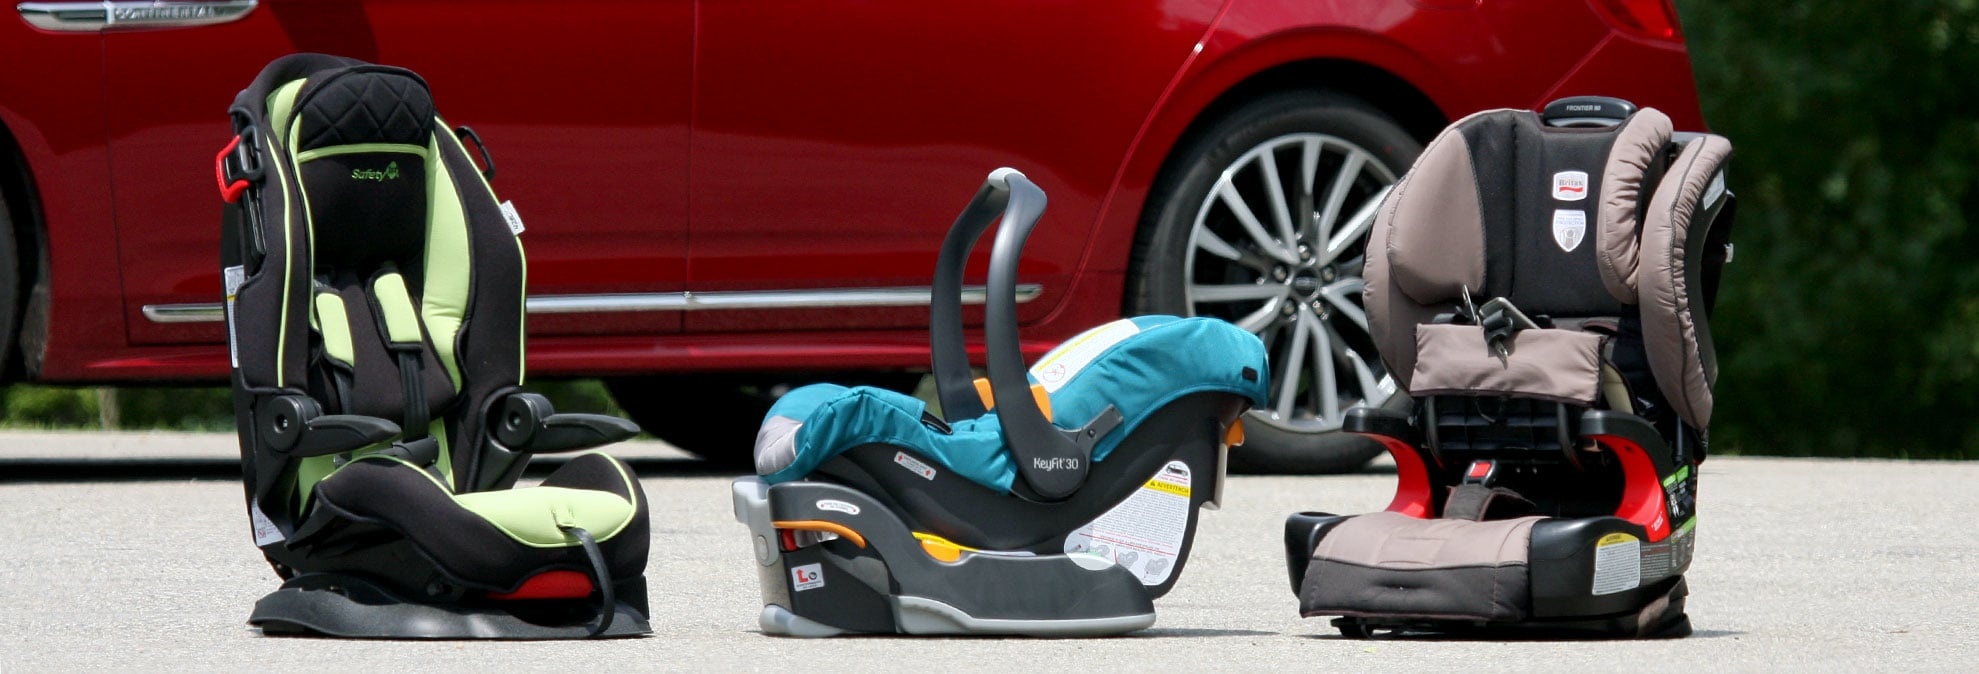 Can I Reuse or Donate My Car Seat? - Consumer Reports